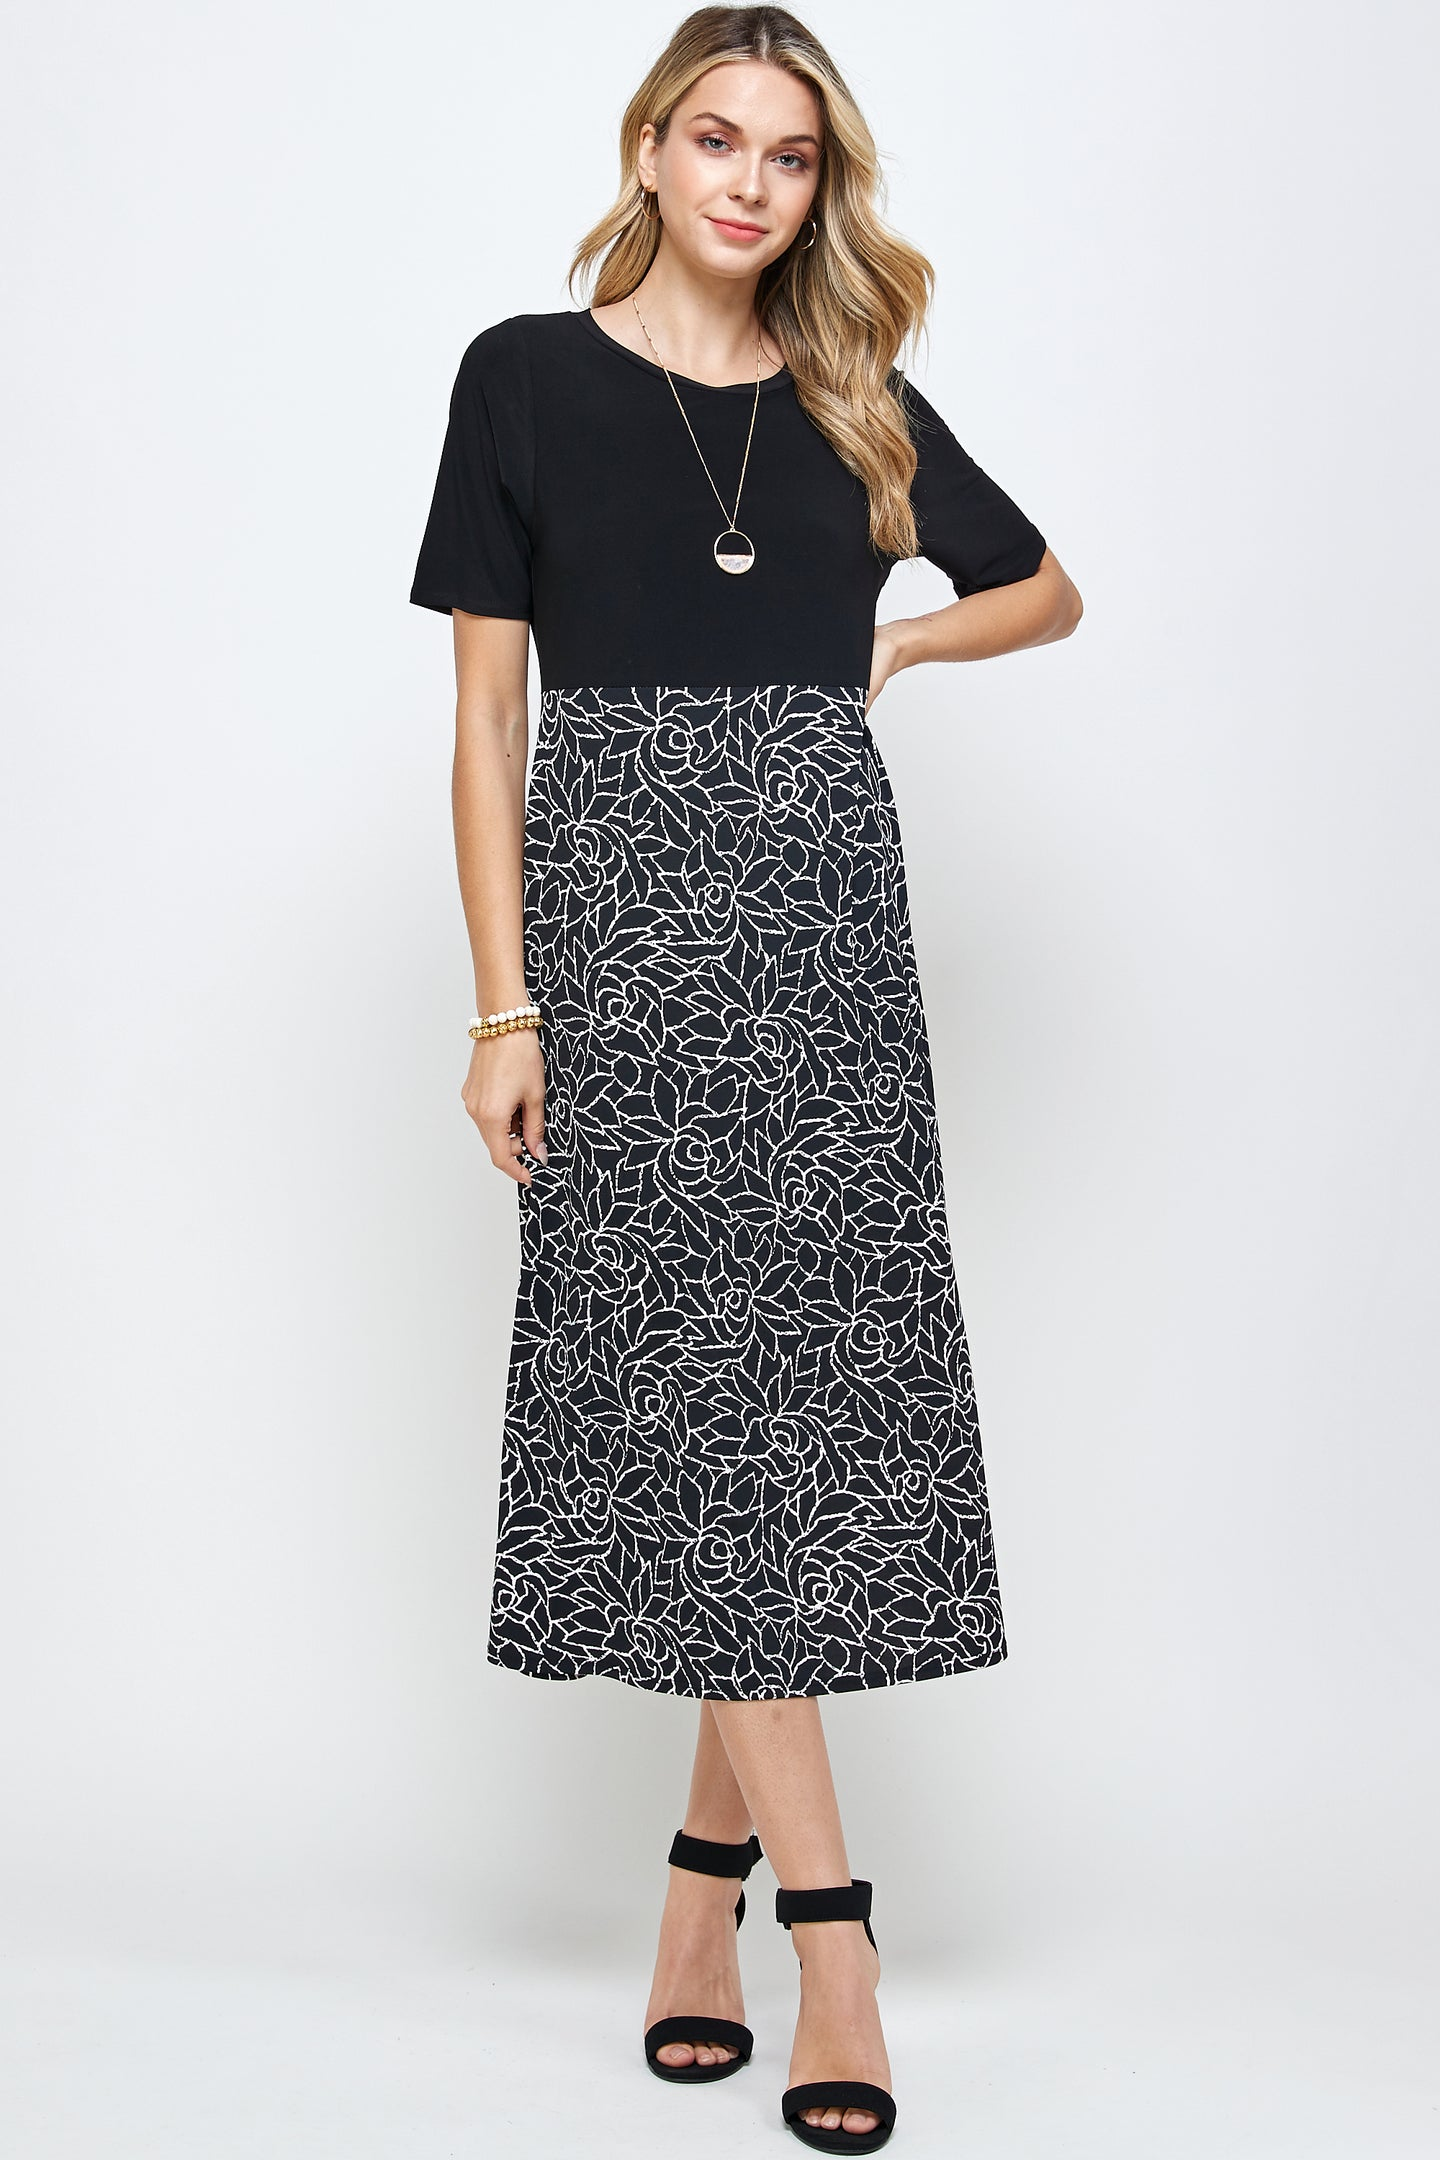 HIT Contrast Waist Line Dress-770HT-HRP1-W253